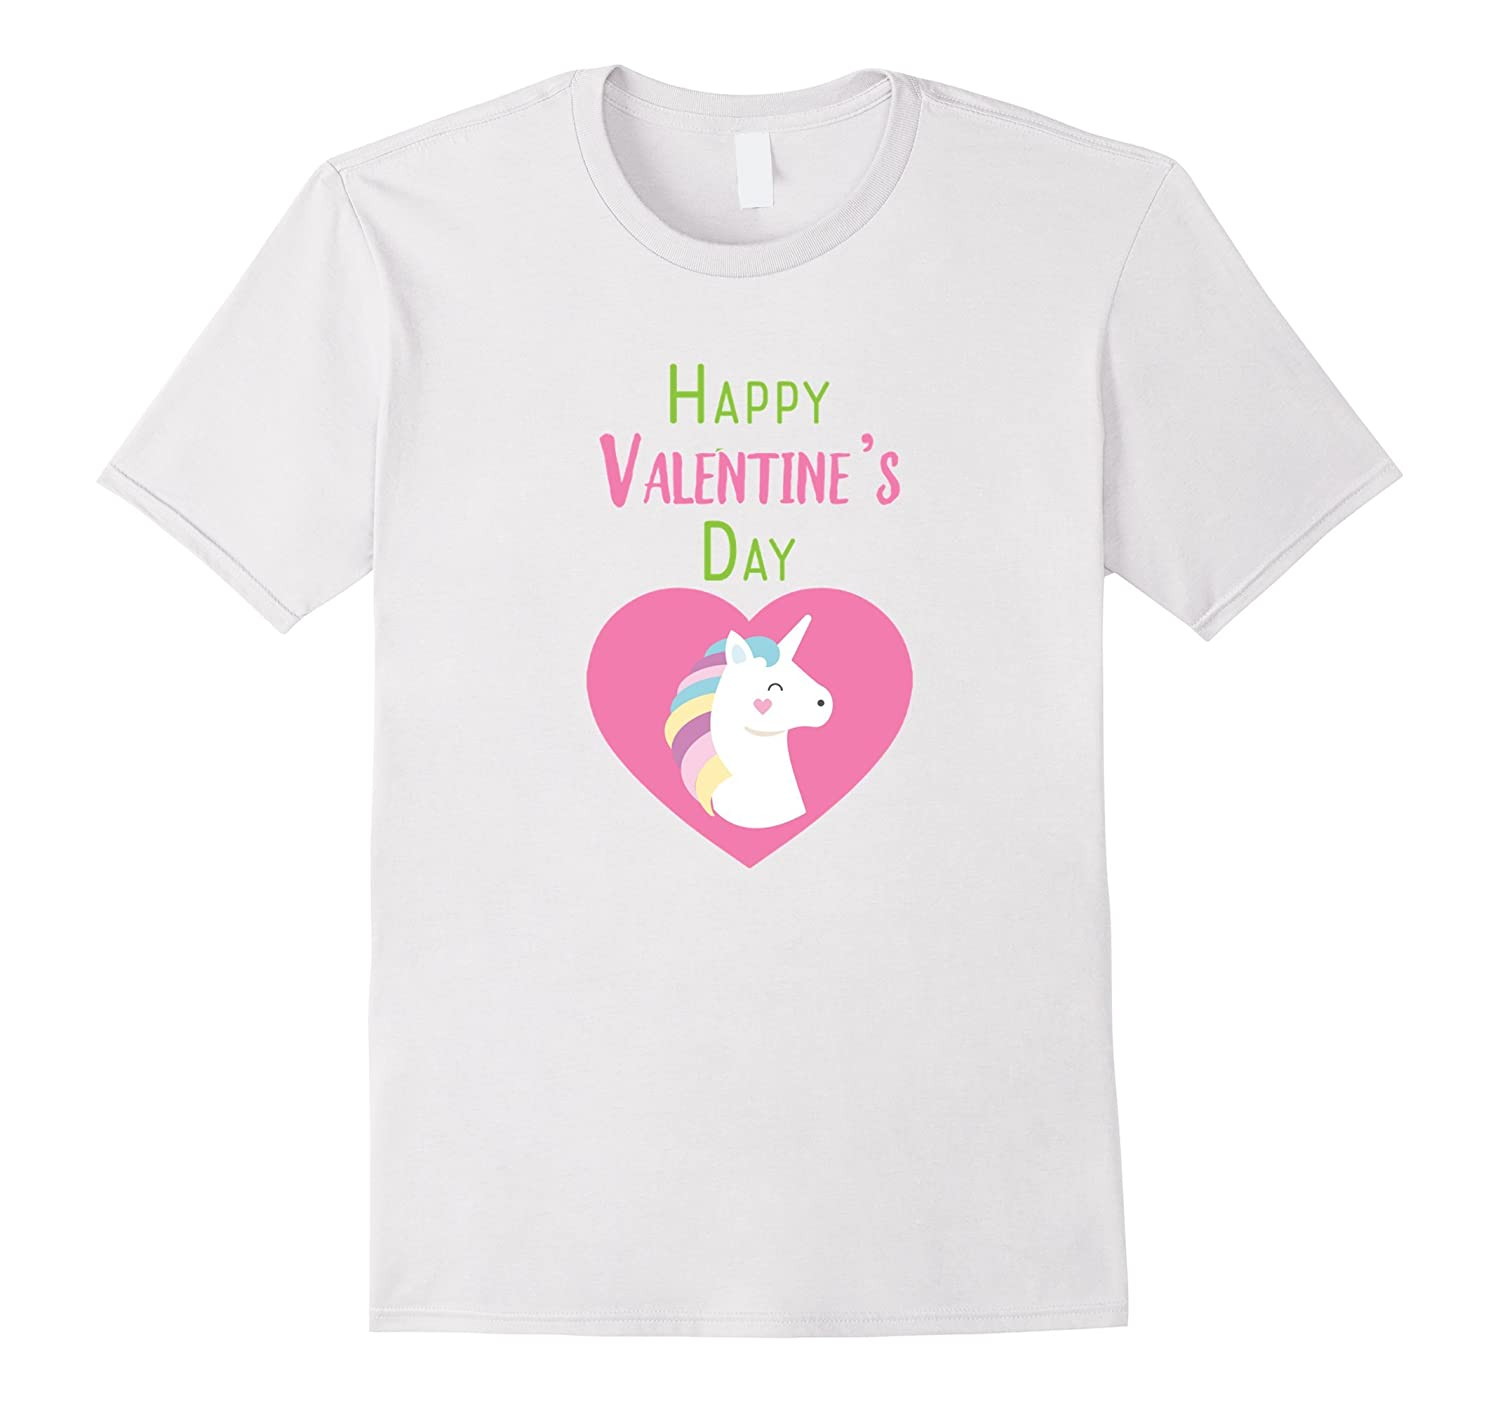 Valentines Day Cute Unicorn T Shirt For Kids Cl Colamaga